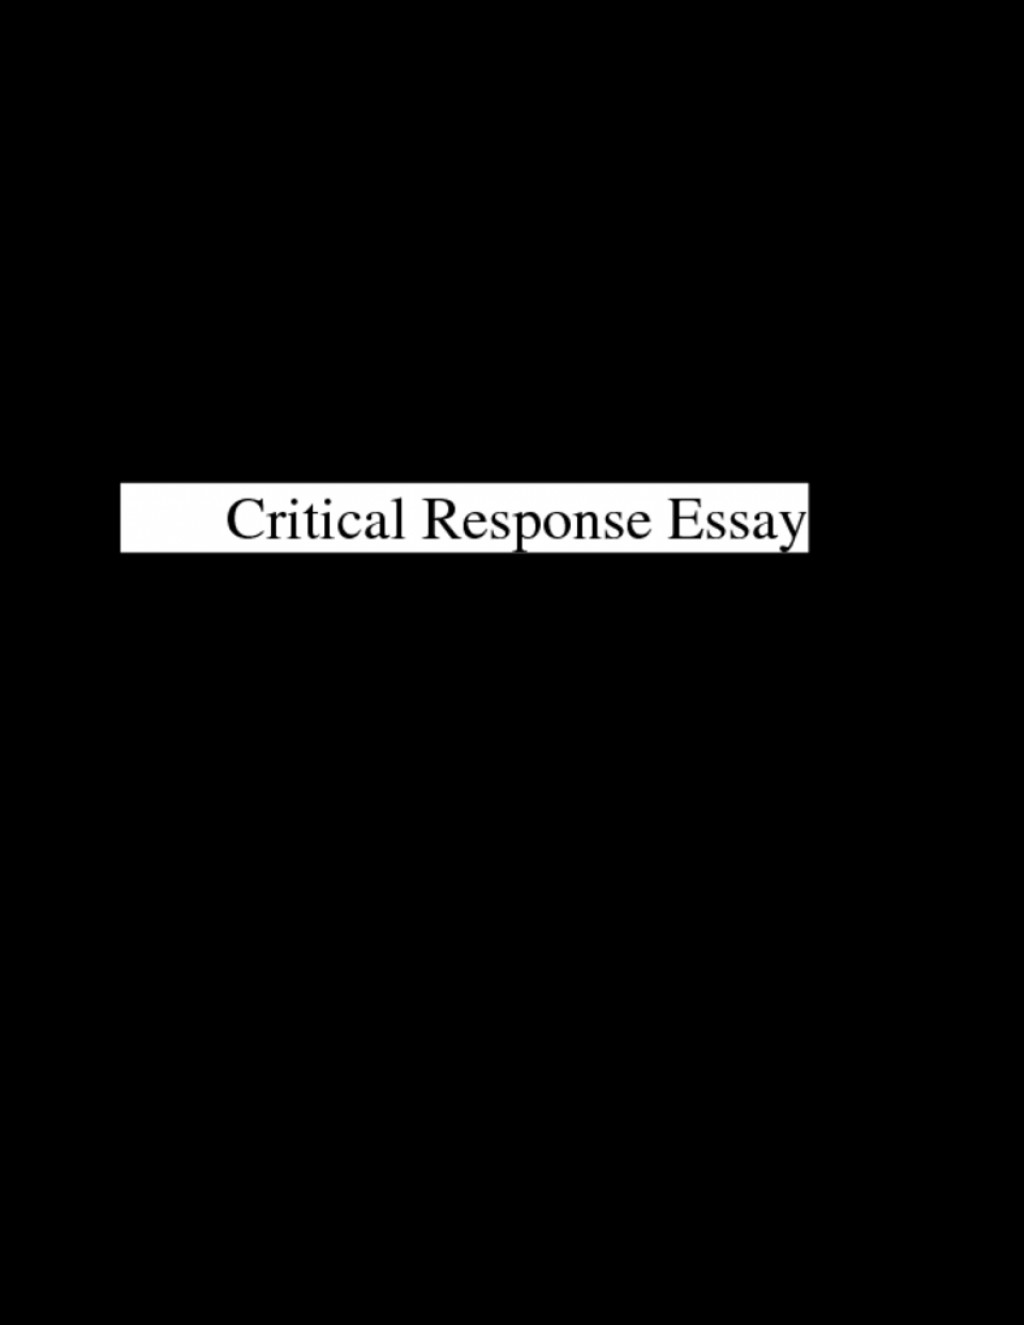 006 Fixed Essay Laenglishpage0 Example Critical Singular Response Sample Rough Draft Large